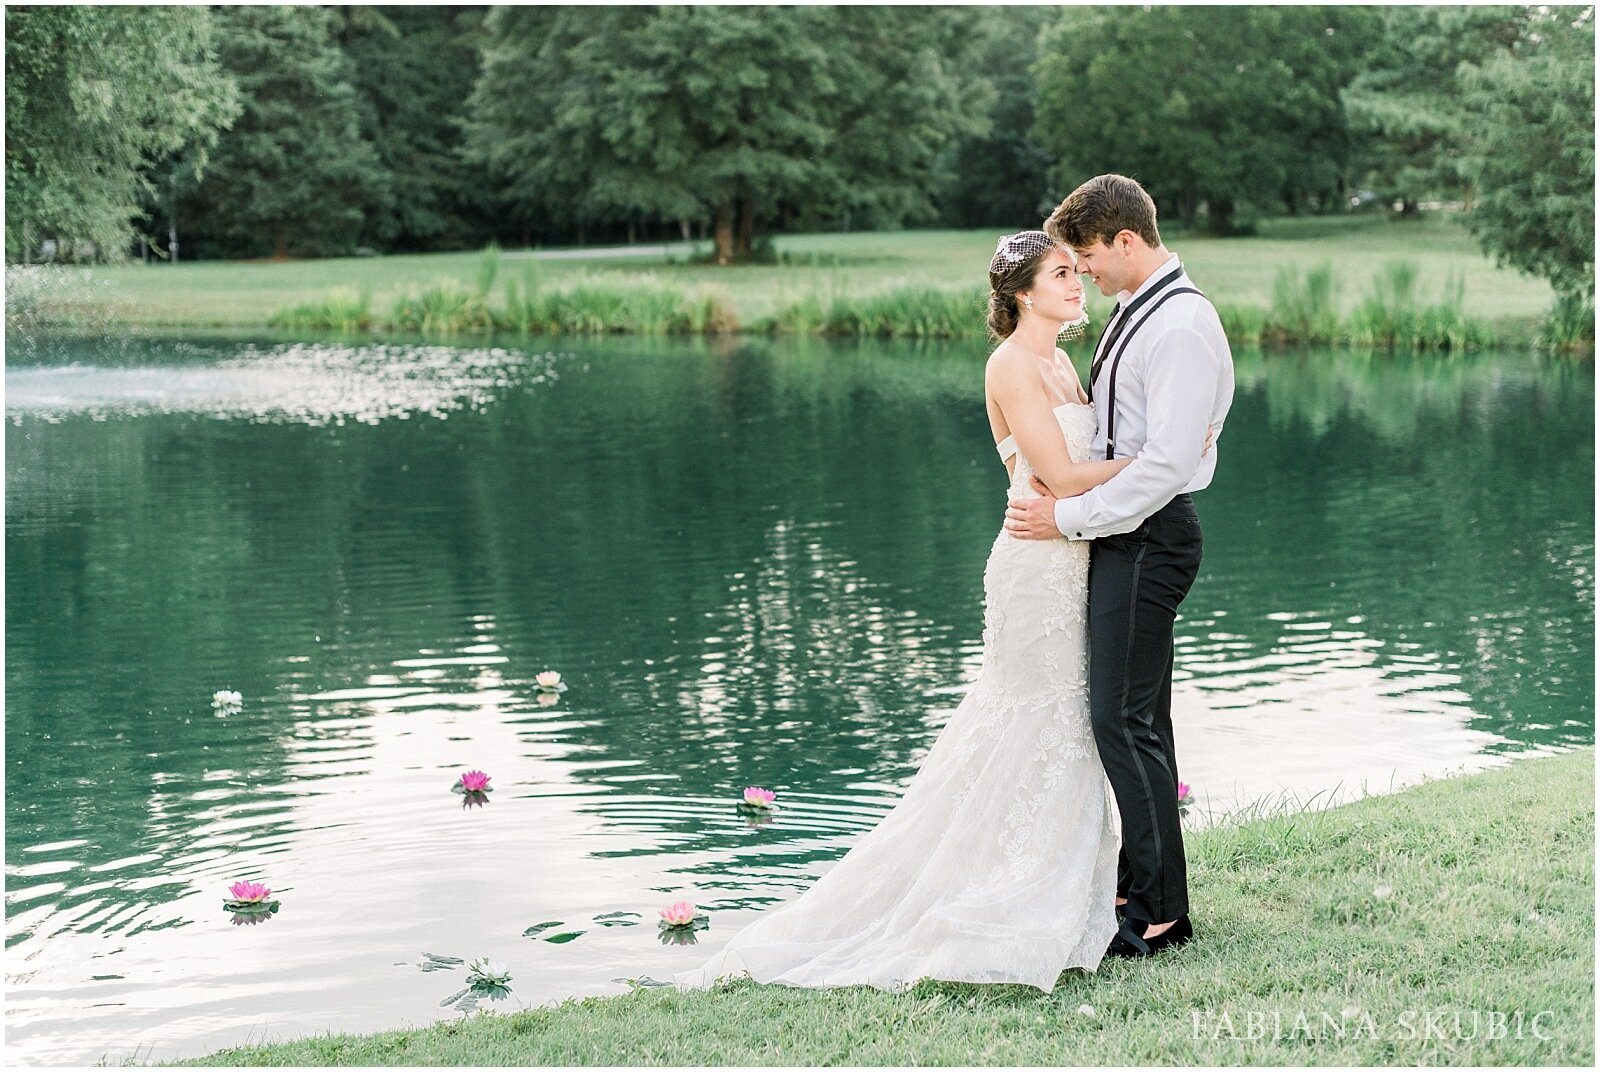 Raleigh-Wedding-Photographer-Fabiana-Skubic (80).jpg